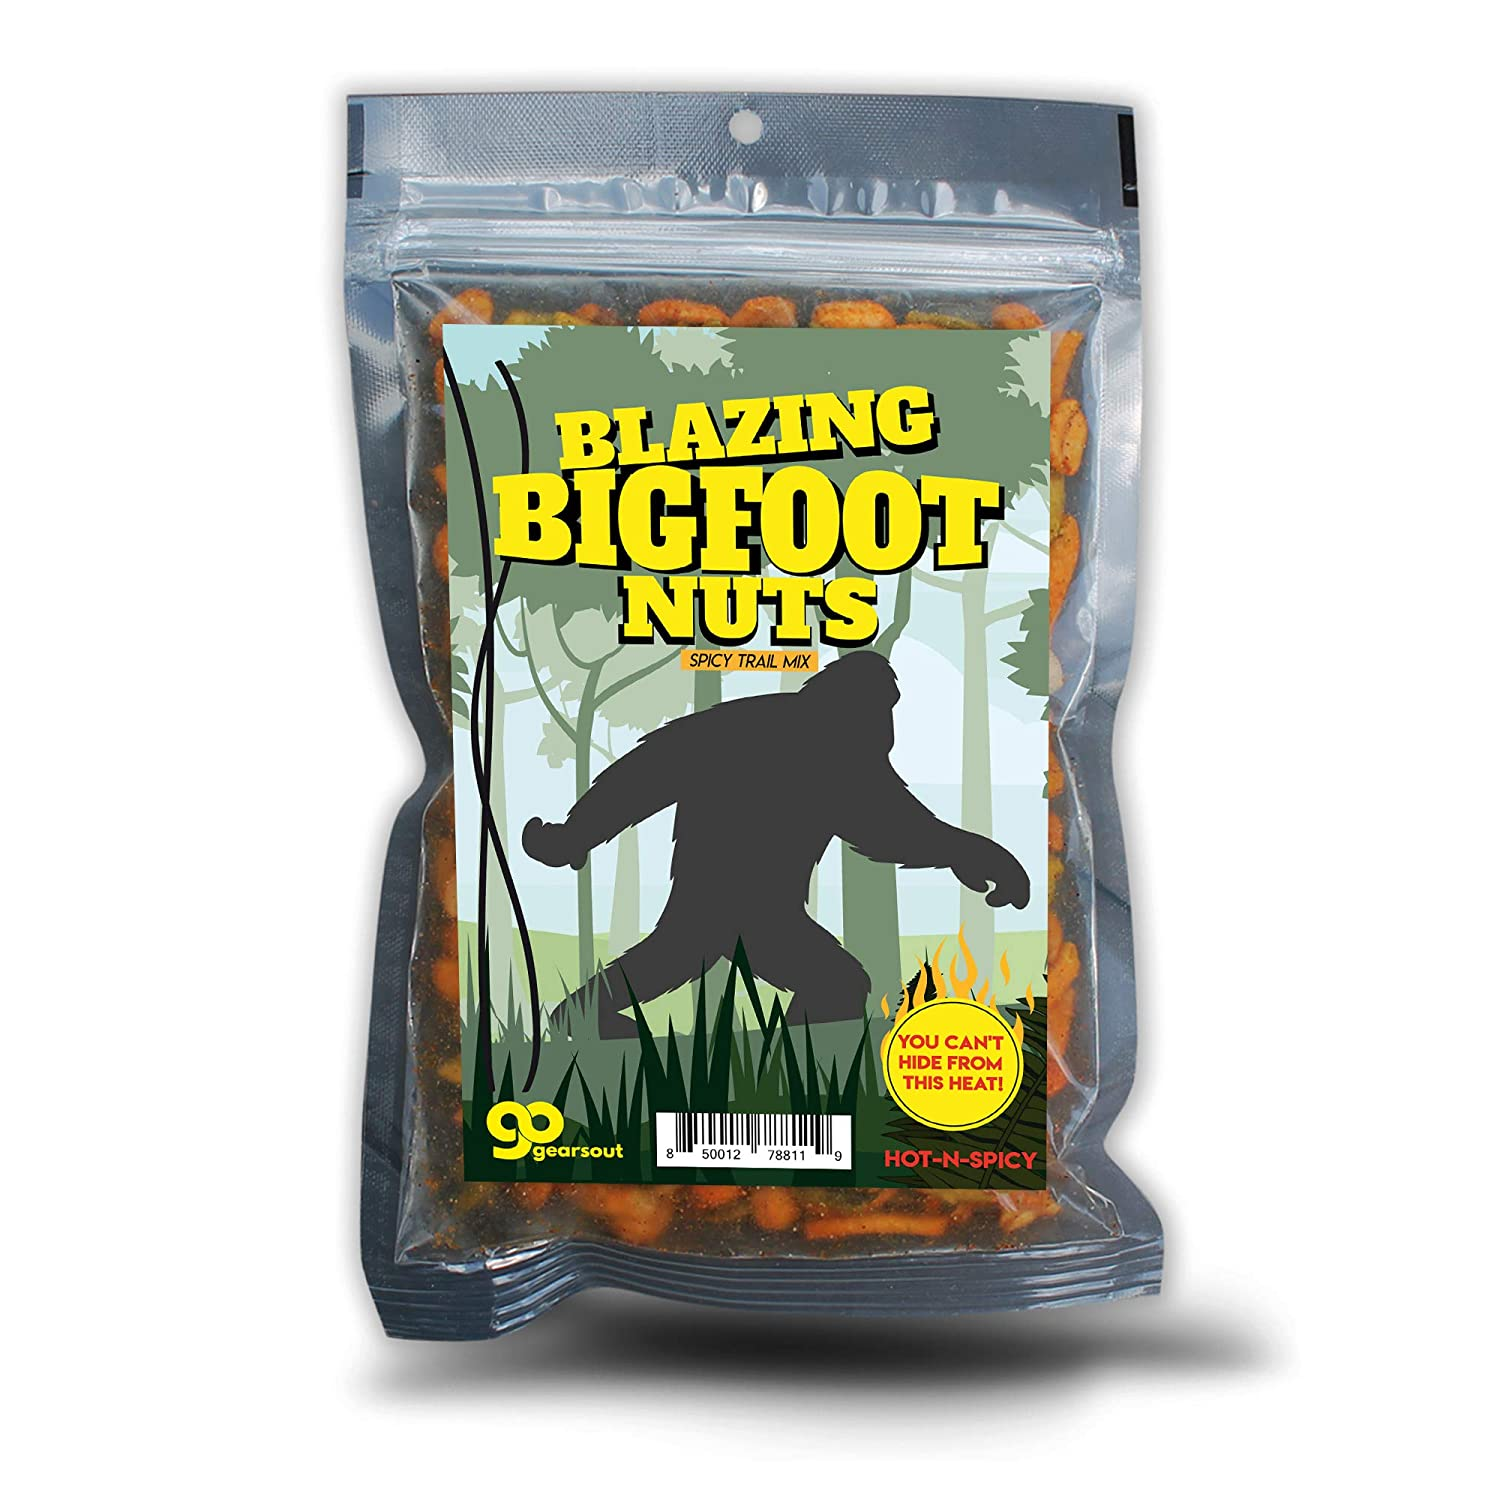 Blazing Bigfoot Nuts Spicy Trail Mix - Funny Sasquatch Design - Spicy Snacks for Men and Women - Premium Blend, Made in the USA